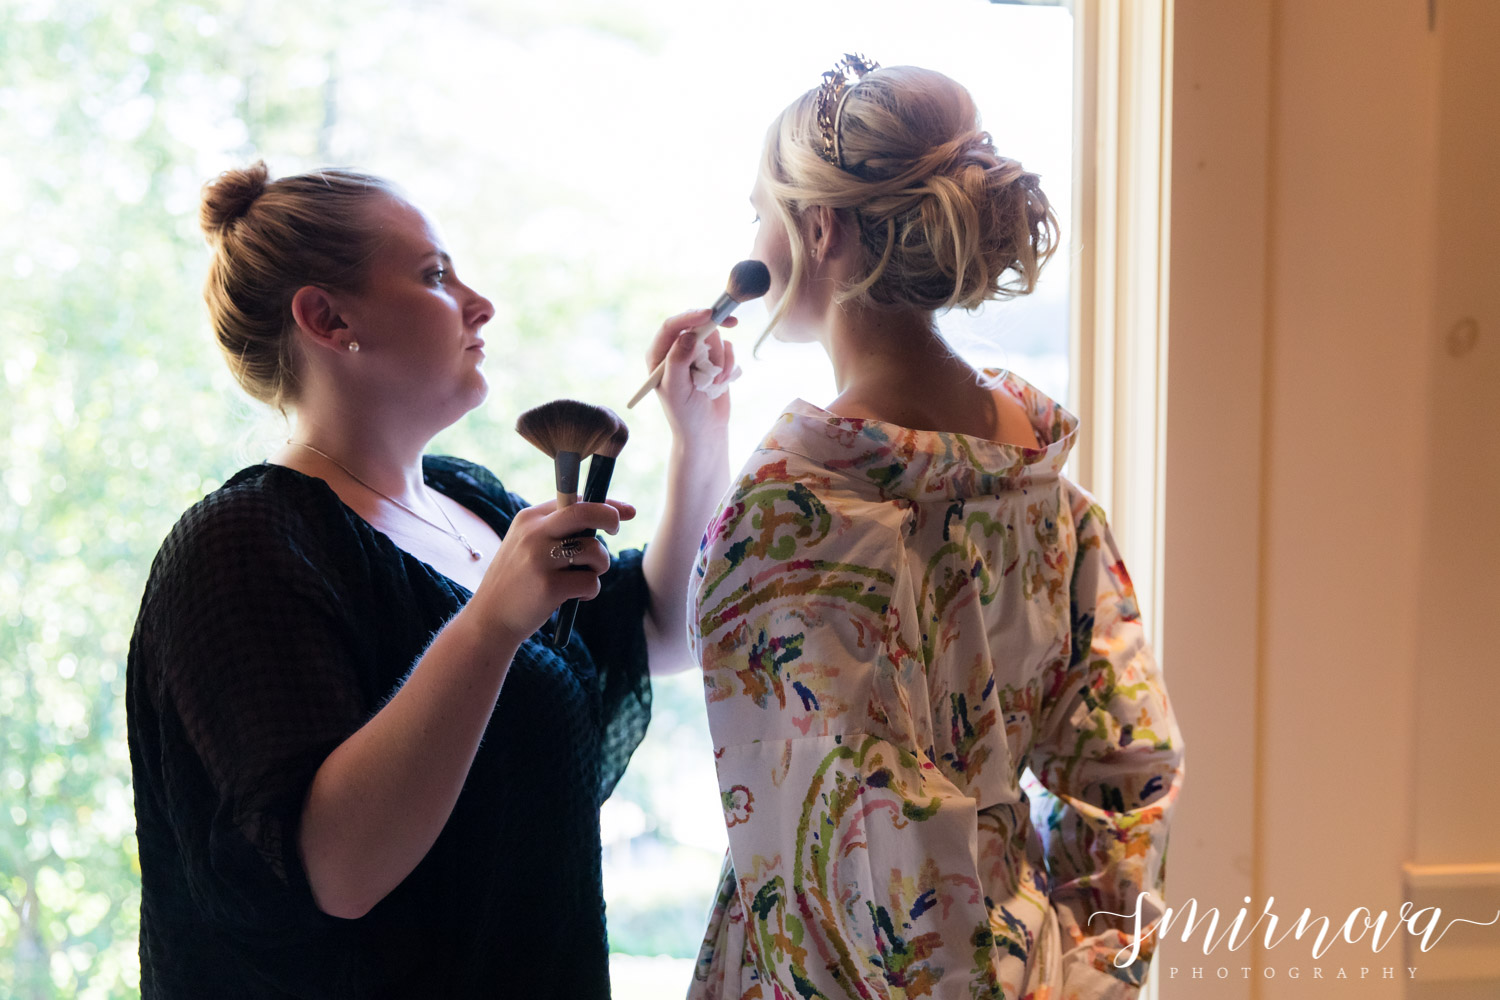 bridal prep makeup Smirnova Photography by Alyssa